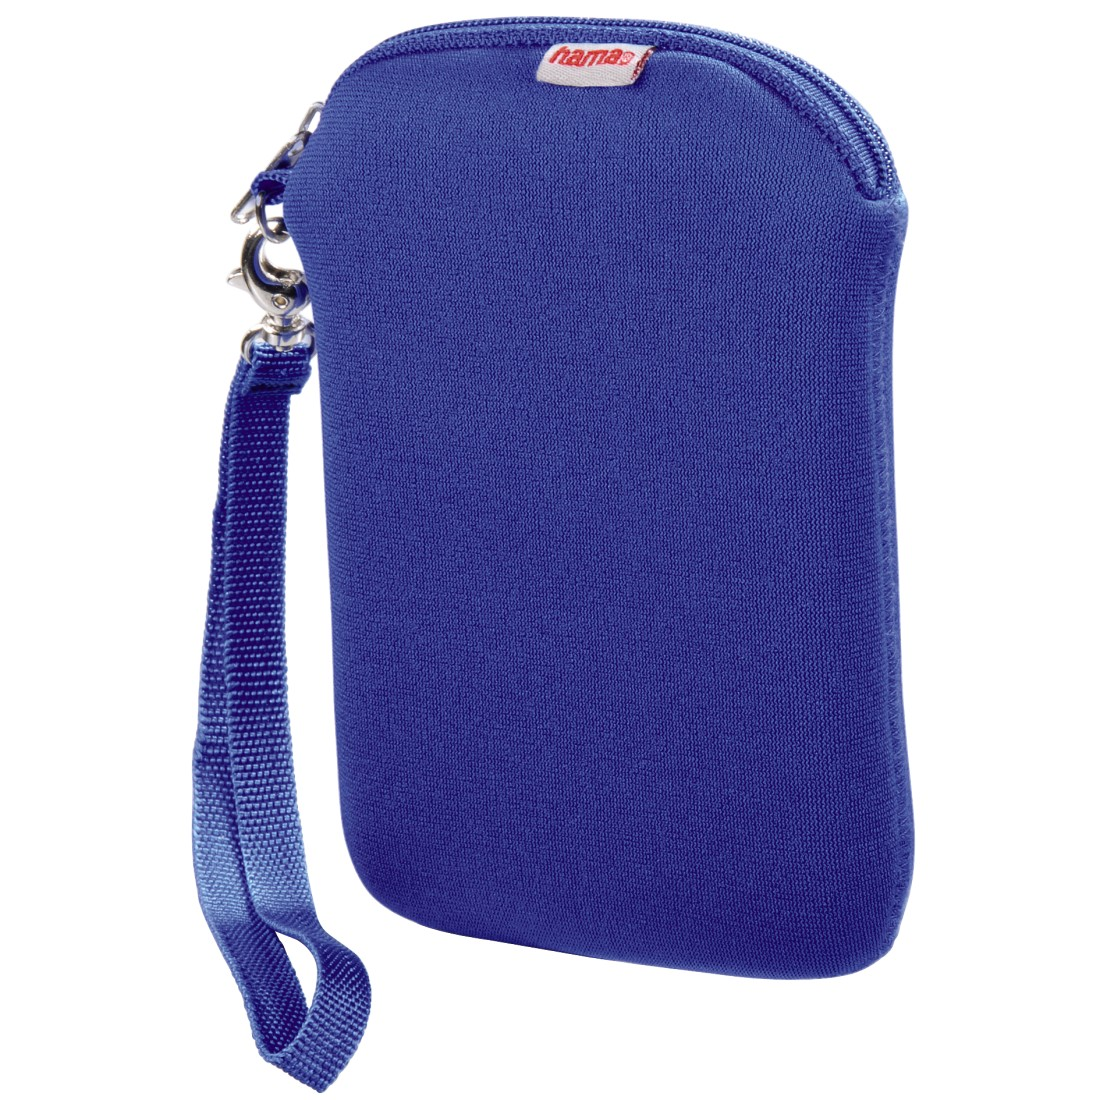 abx High-Res Image - Hama, 2.5 HDD Cover, neoprene, blue